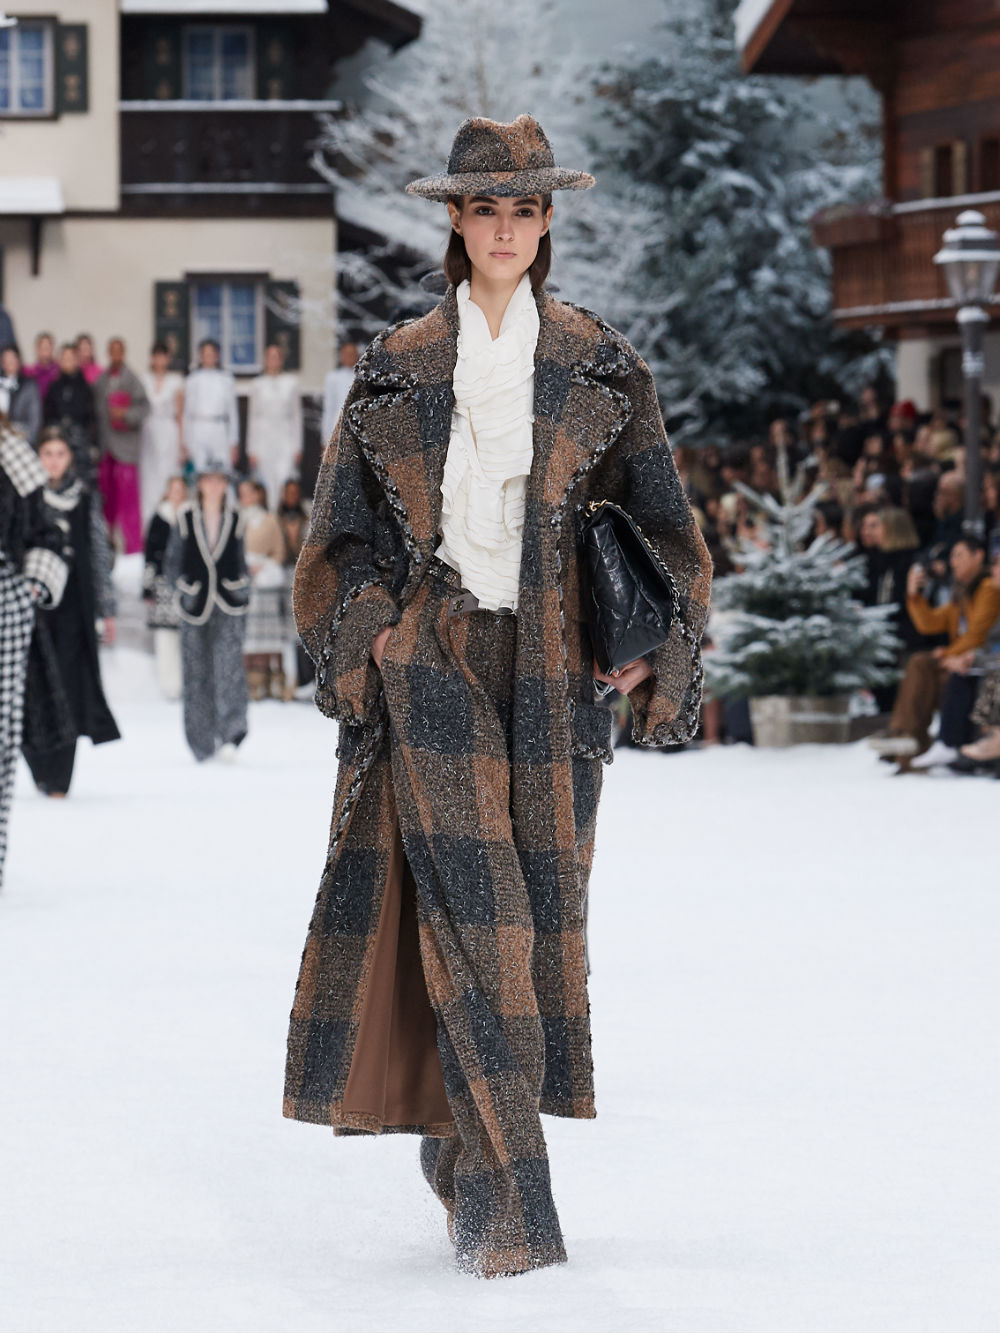 FALL-WINTER 201920 READY-TO-WEAR COLLECTION (3)